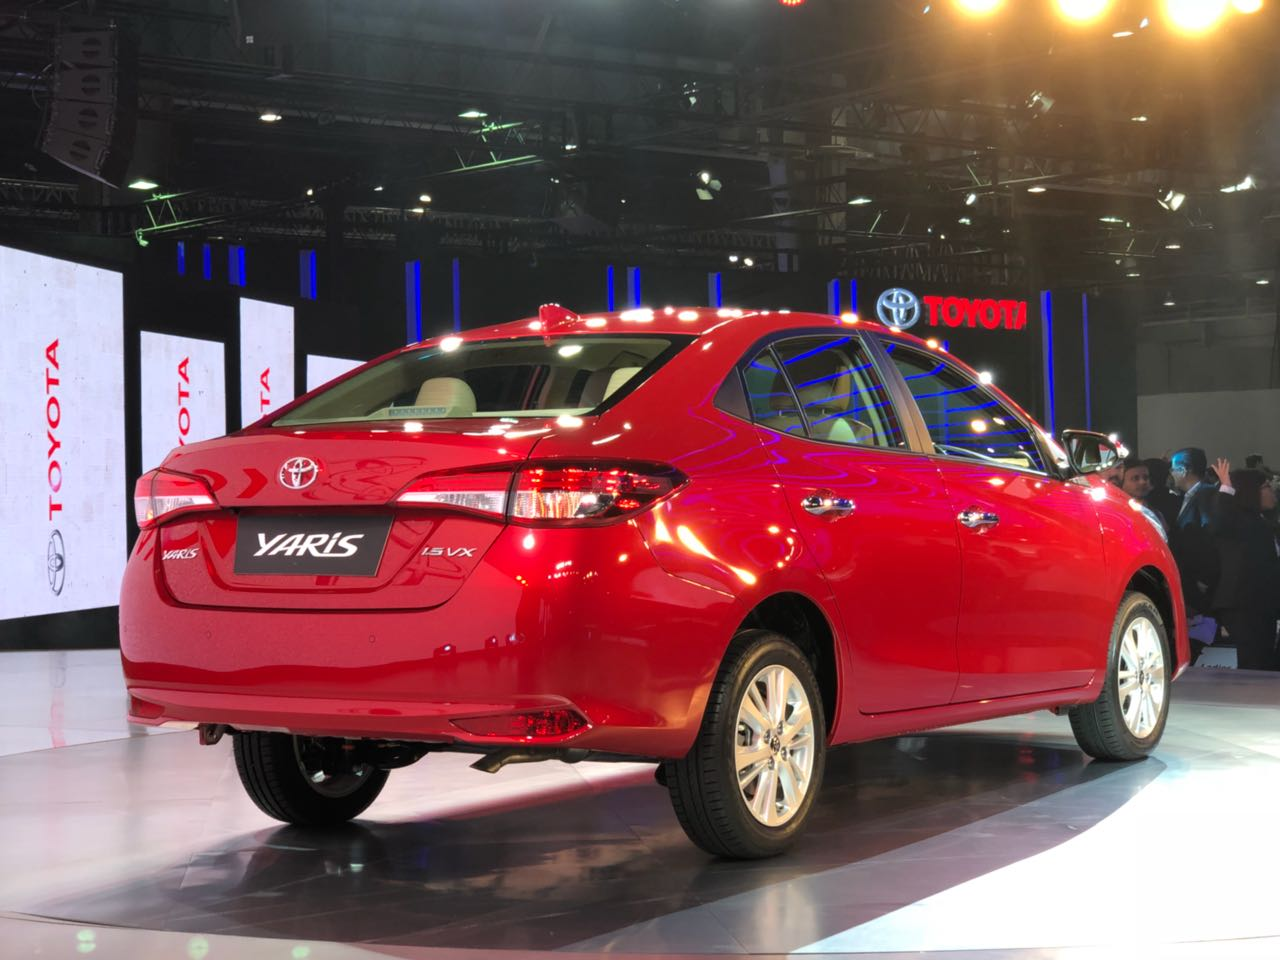 toyota yaris debuts in india at auto expo 2018 to rival